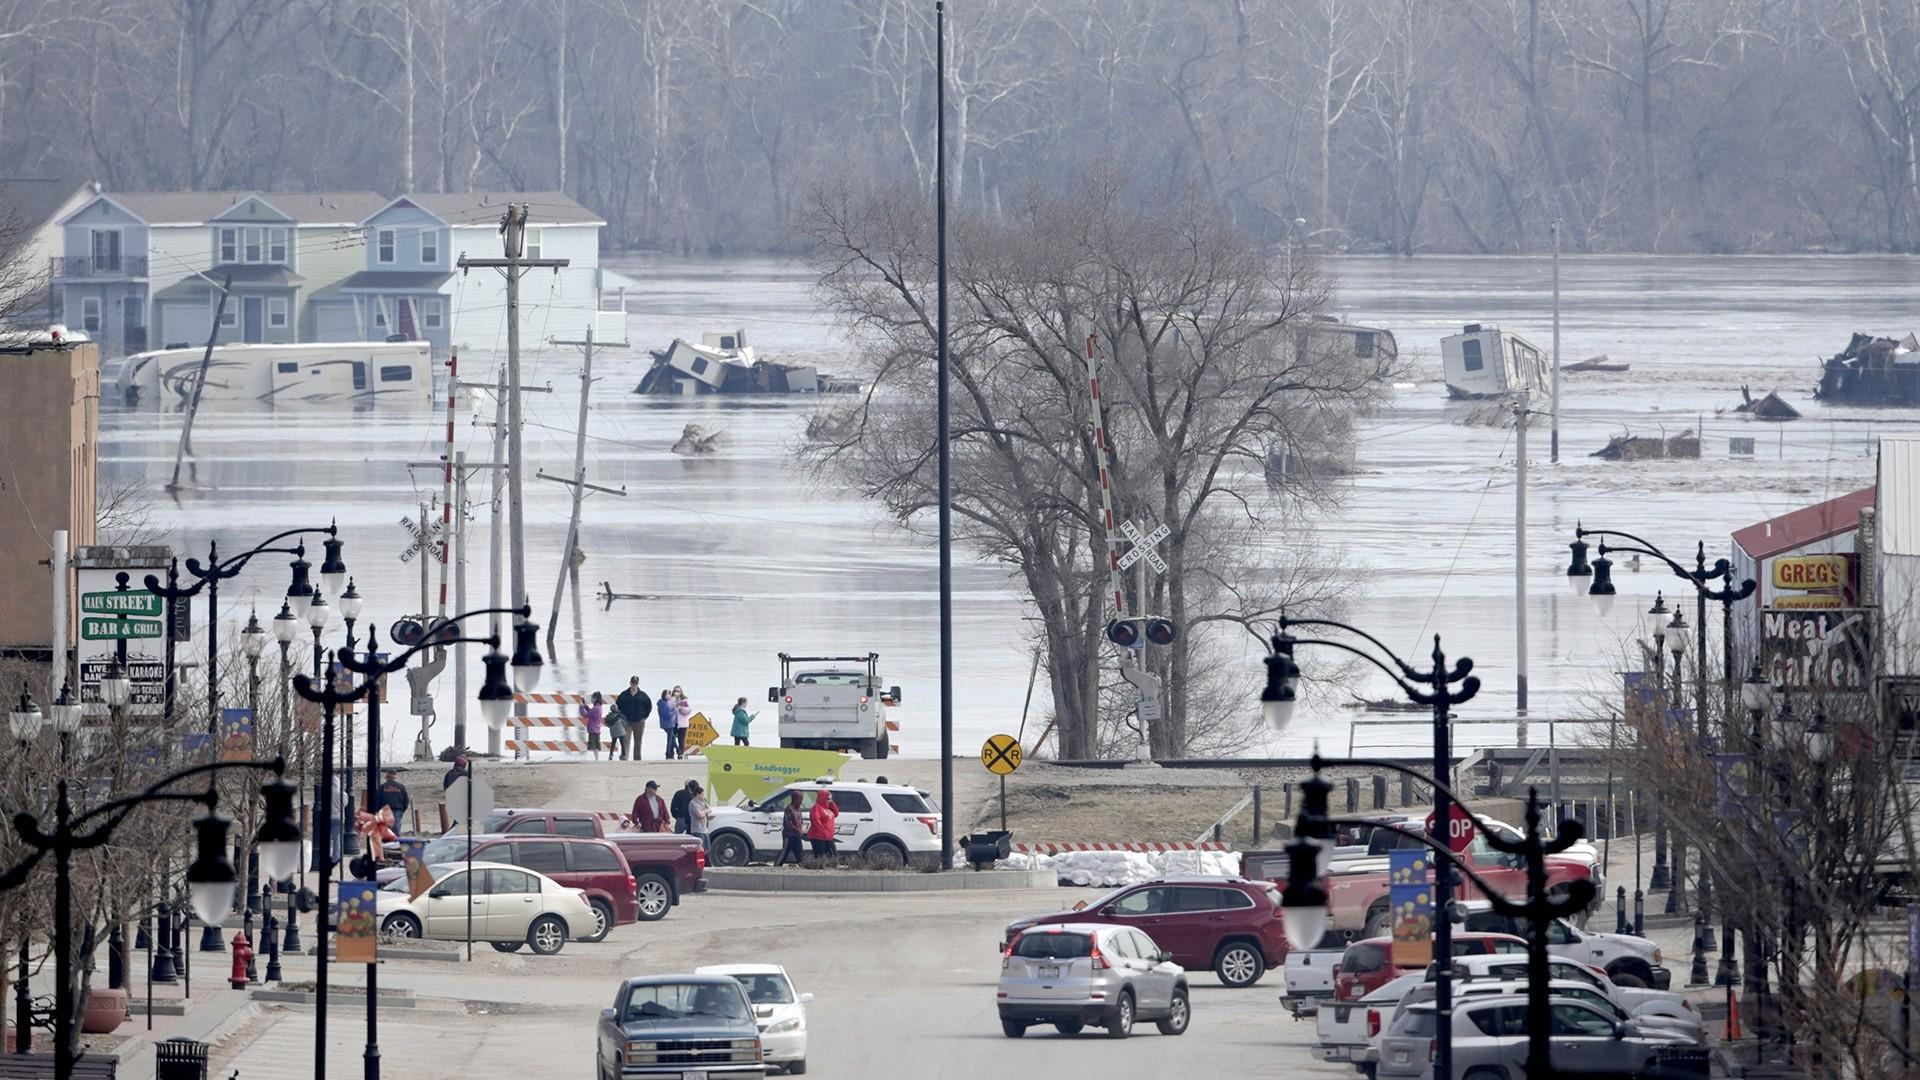 More than 10 million people remain under flood warnings as Midwest braces for more rain